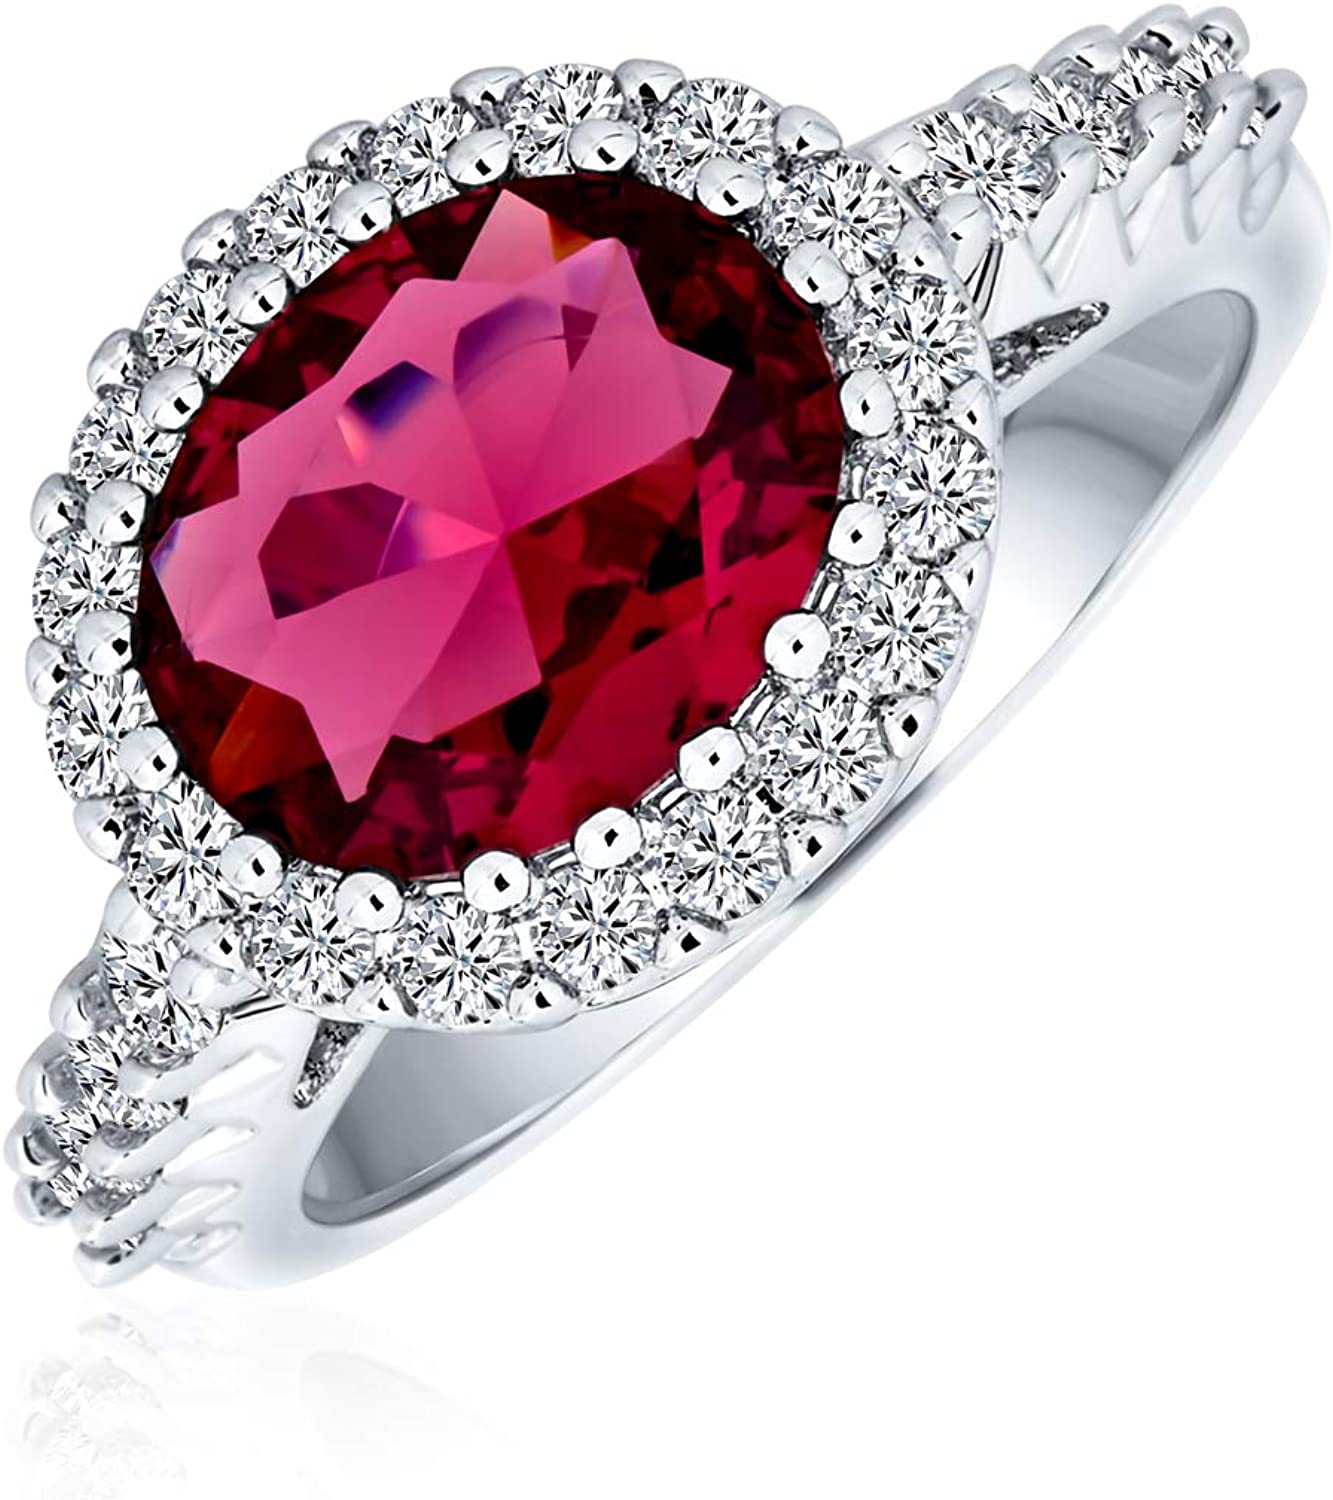 Bling Jewelry 3CT Oval Austin Mall Solitaire Zirconia Pave Simulate Cubic CZ Finally popular brand